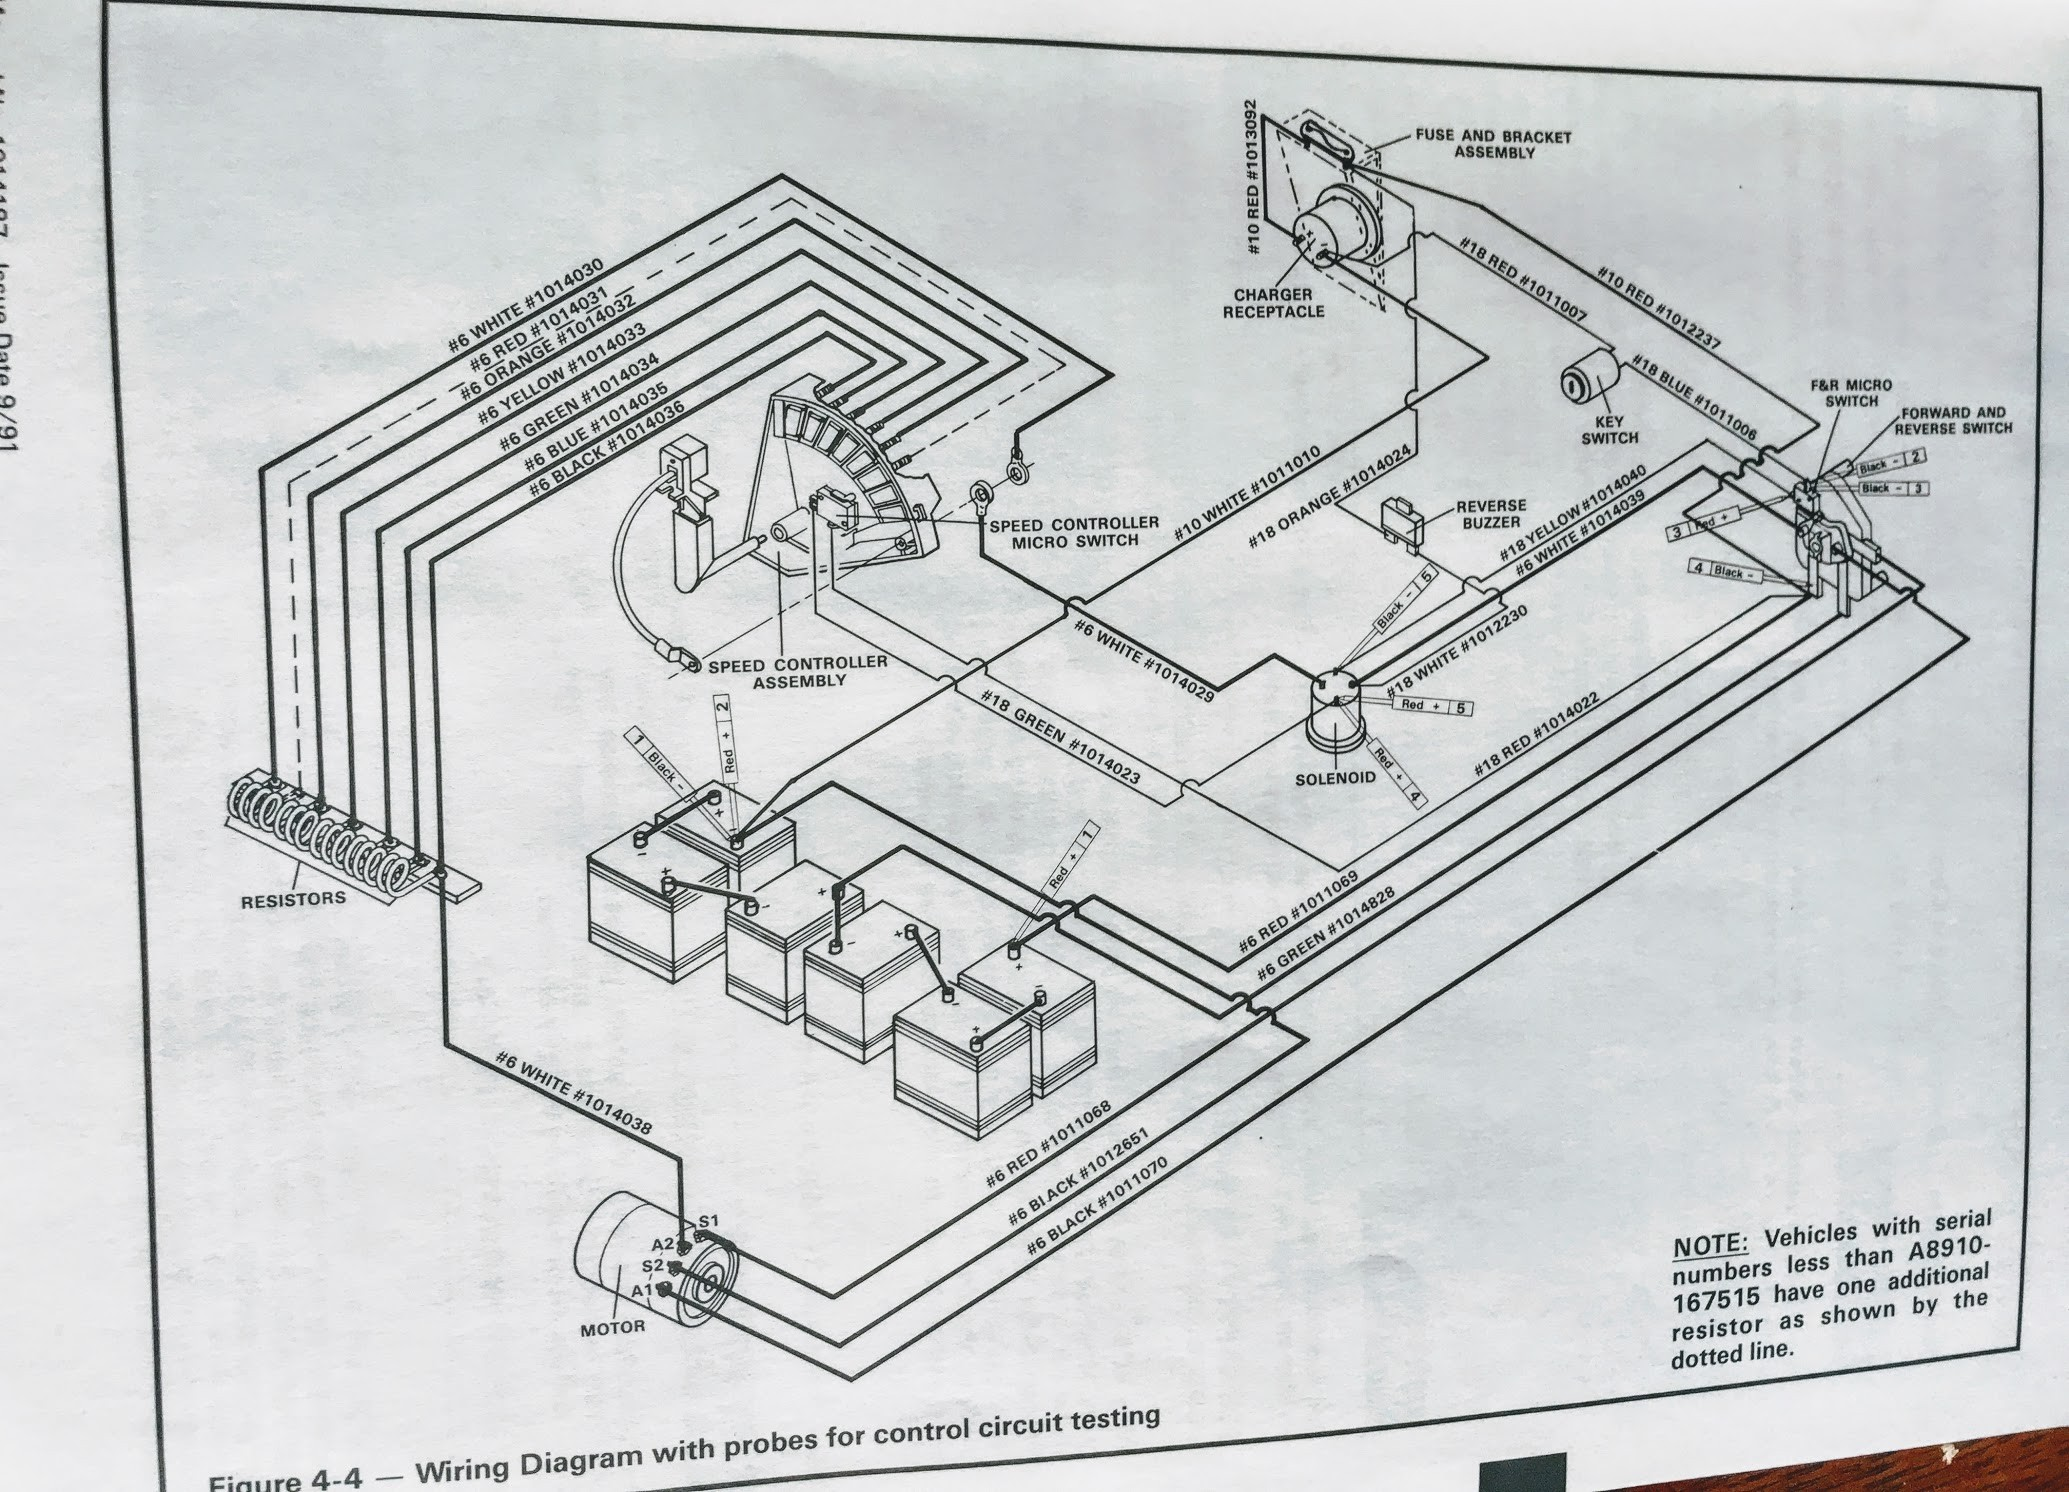 1986 Club Car Wiring Diagram 33 Club Car Precedent Wiring Diagram Wiring Diagram List Of 1986 Club Car Wiring Diagram